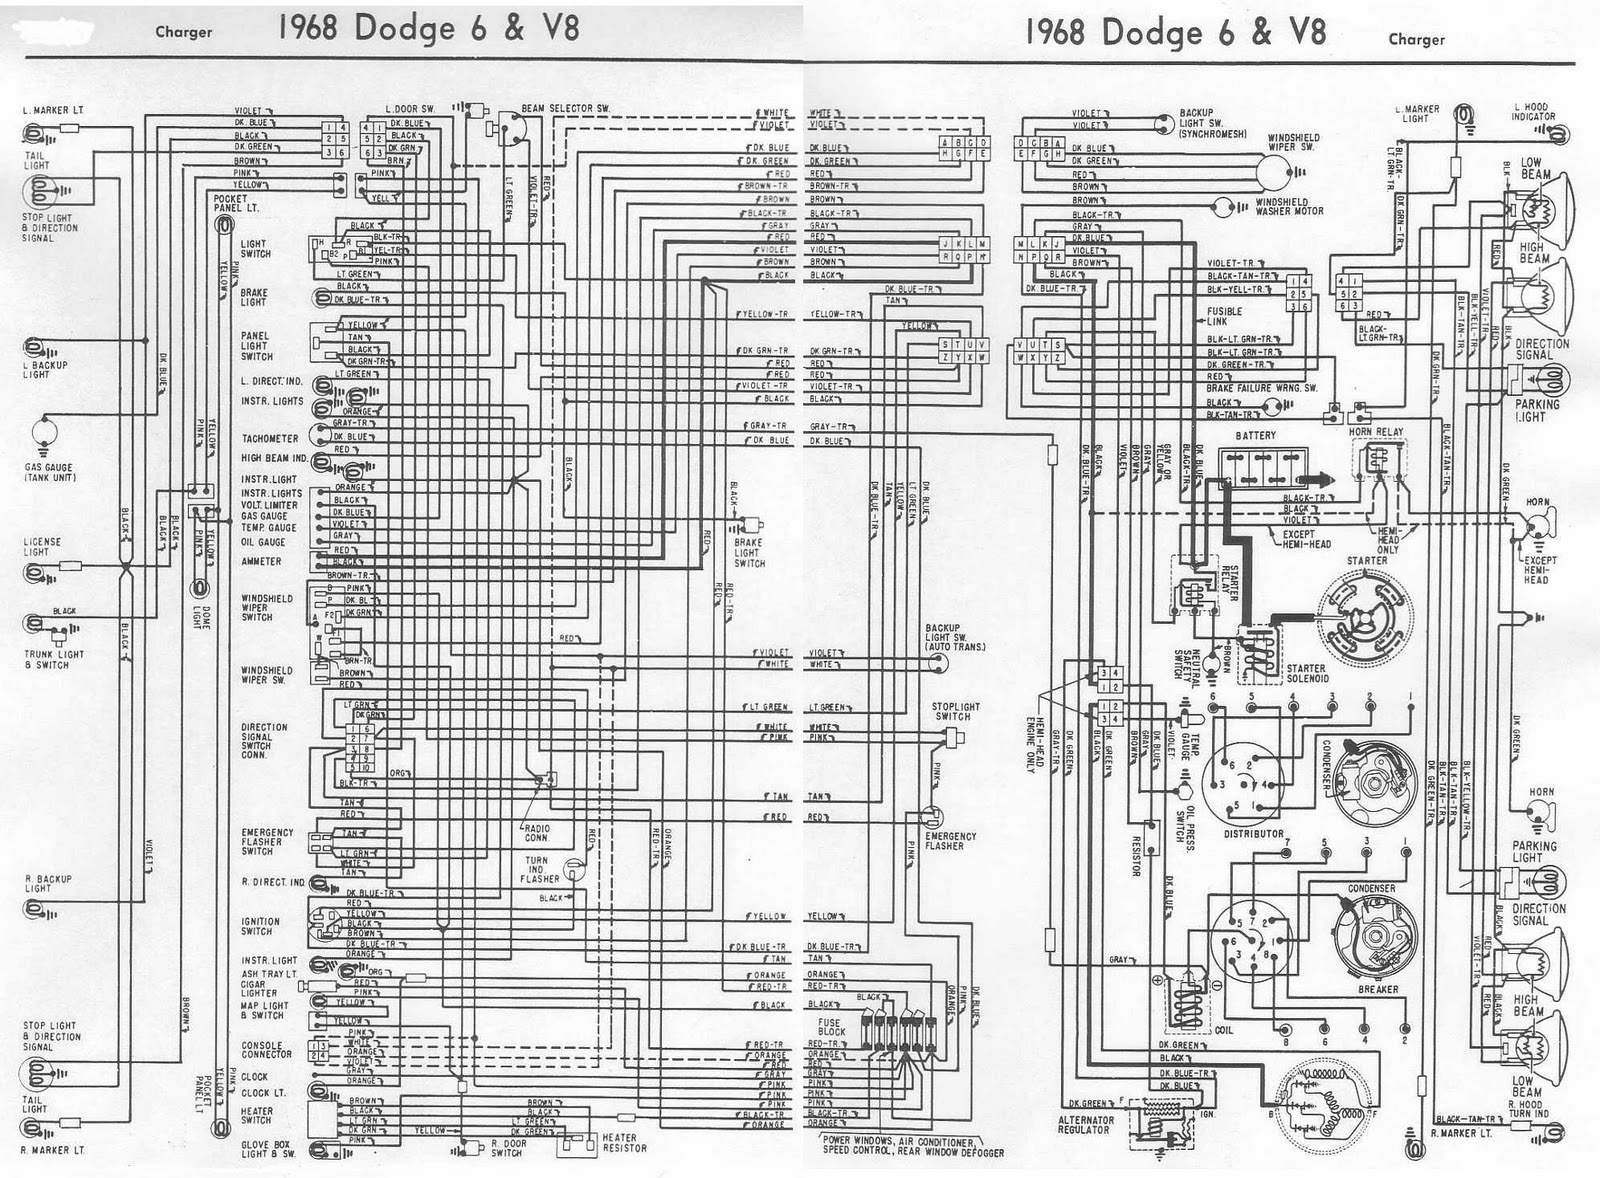 Dodge+Charger+1968+6+and+V8+Complete+Electrical+Wiring+Diagram dodge charger wiring diagram dodge wiring diagrams instruction 1972 dodge charger wiring diagram at n-0.co